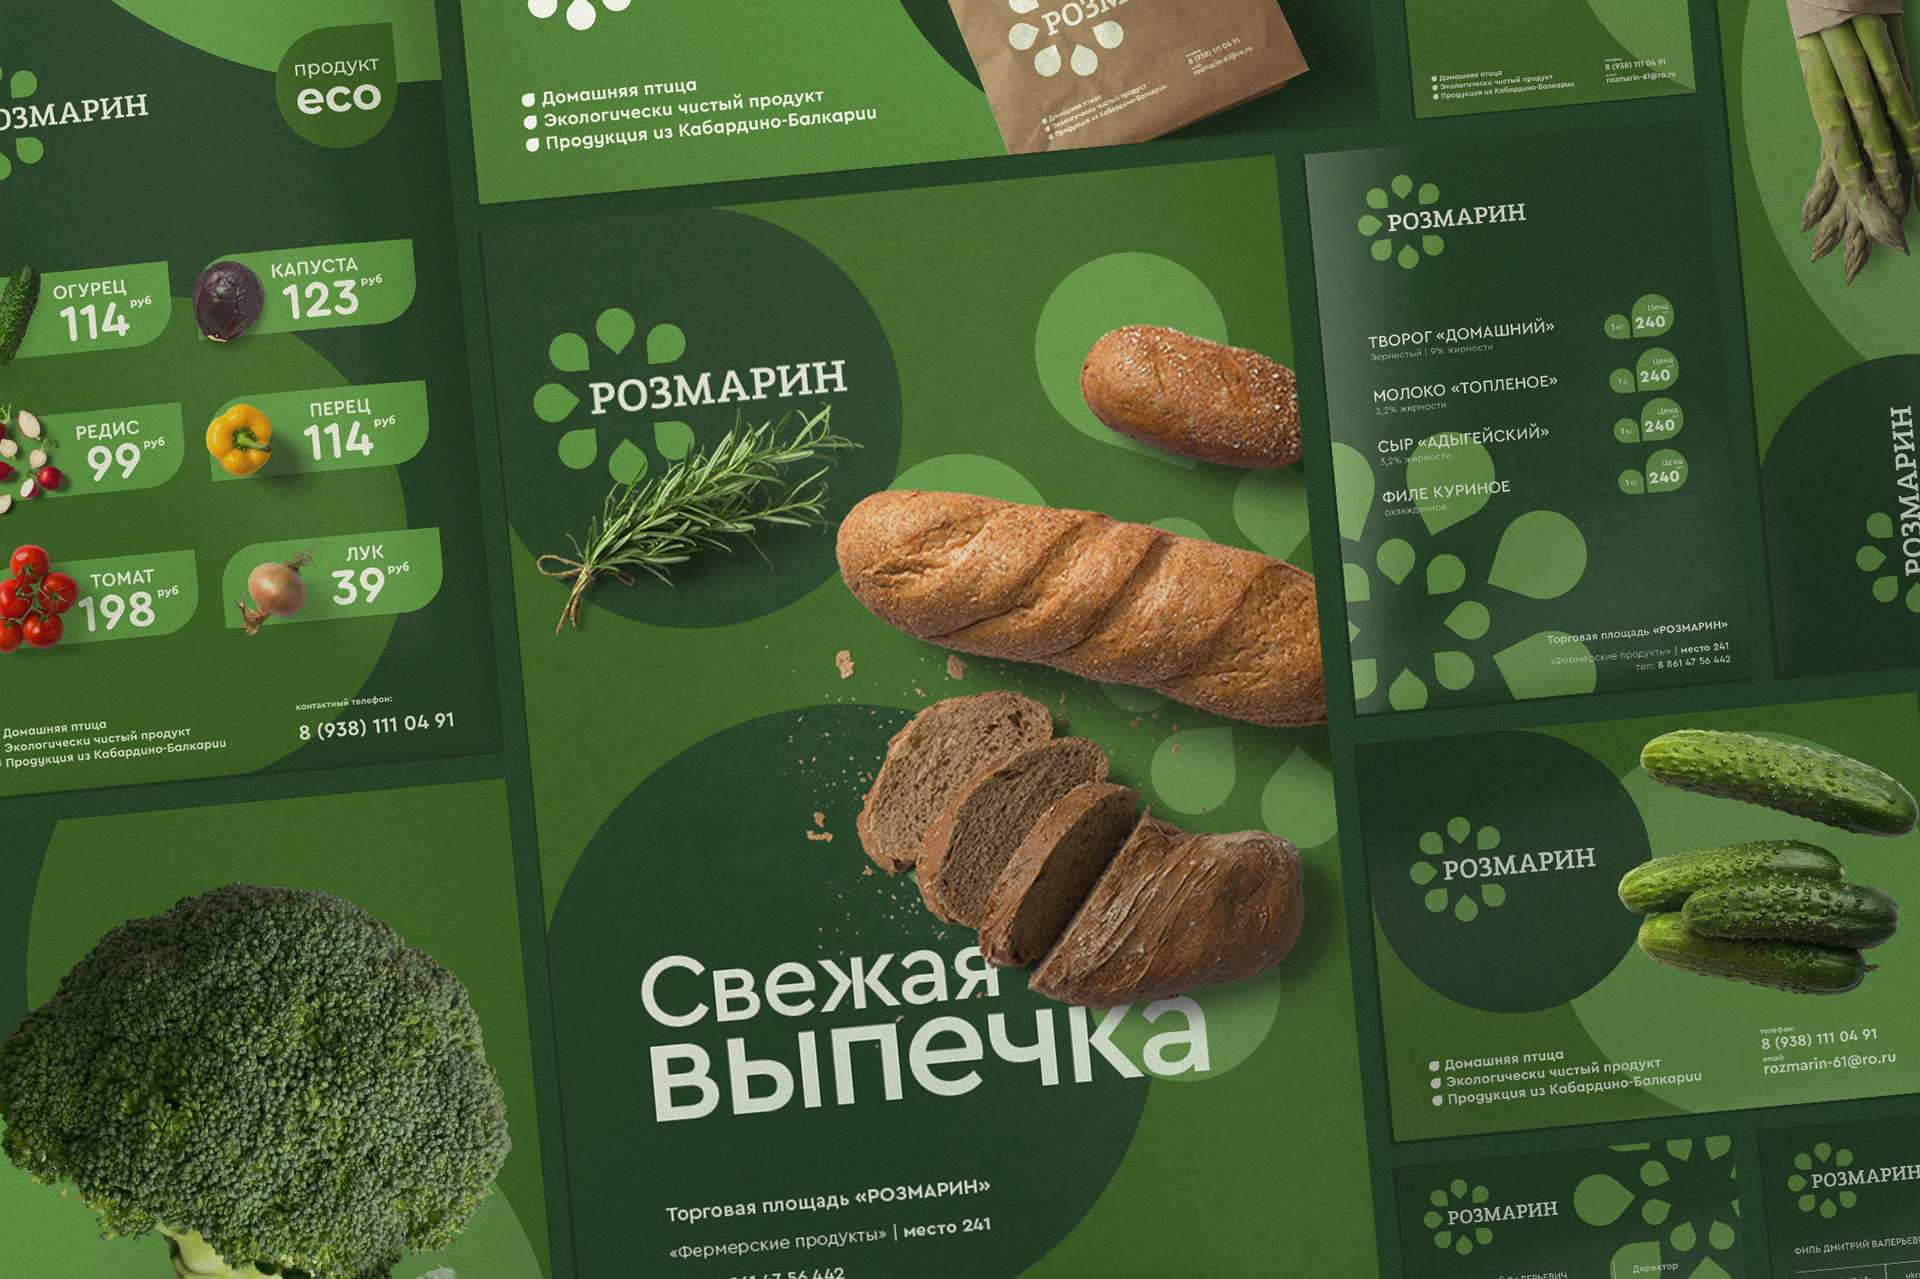 Corporate Identity for the Rosemary Retail Space in Rostov-on-Don